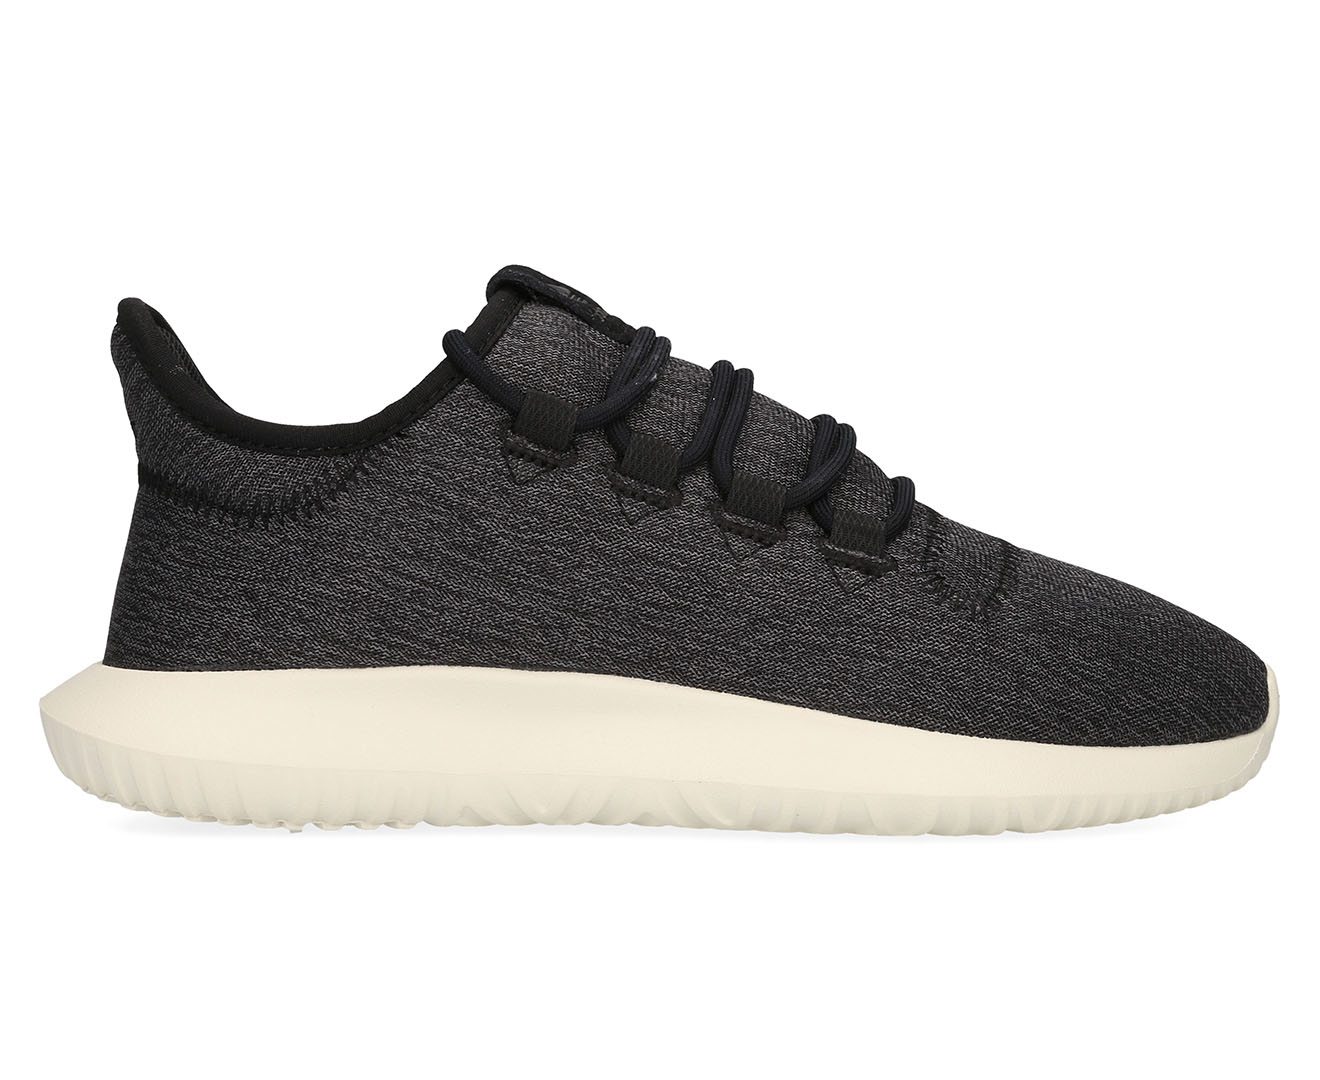 reputable site 8ba2a aa03d Adidas Originals Women s Tubular Shadow Shoes - Core Black Off White